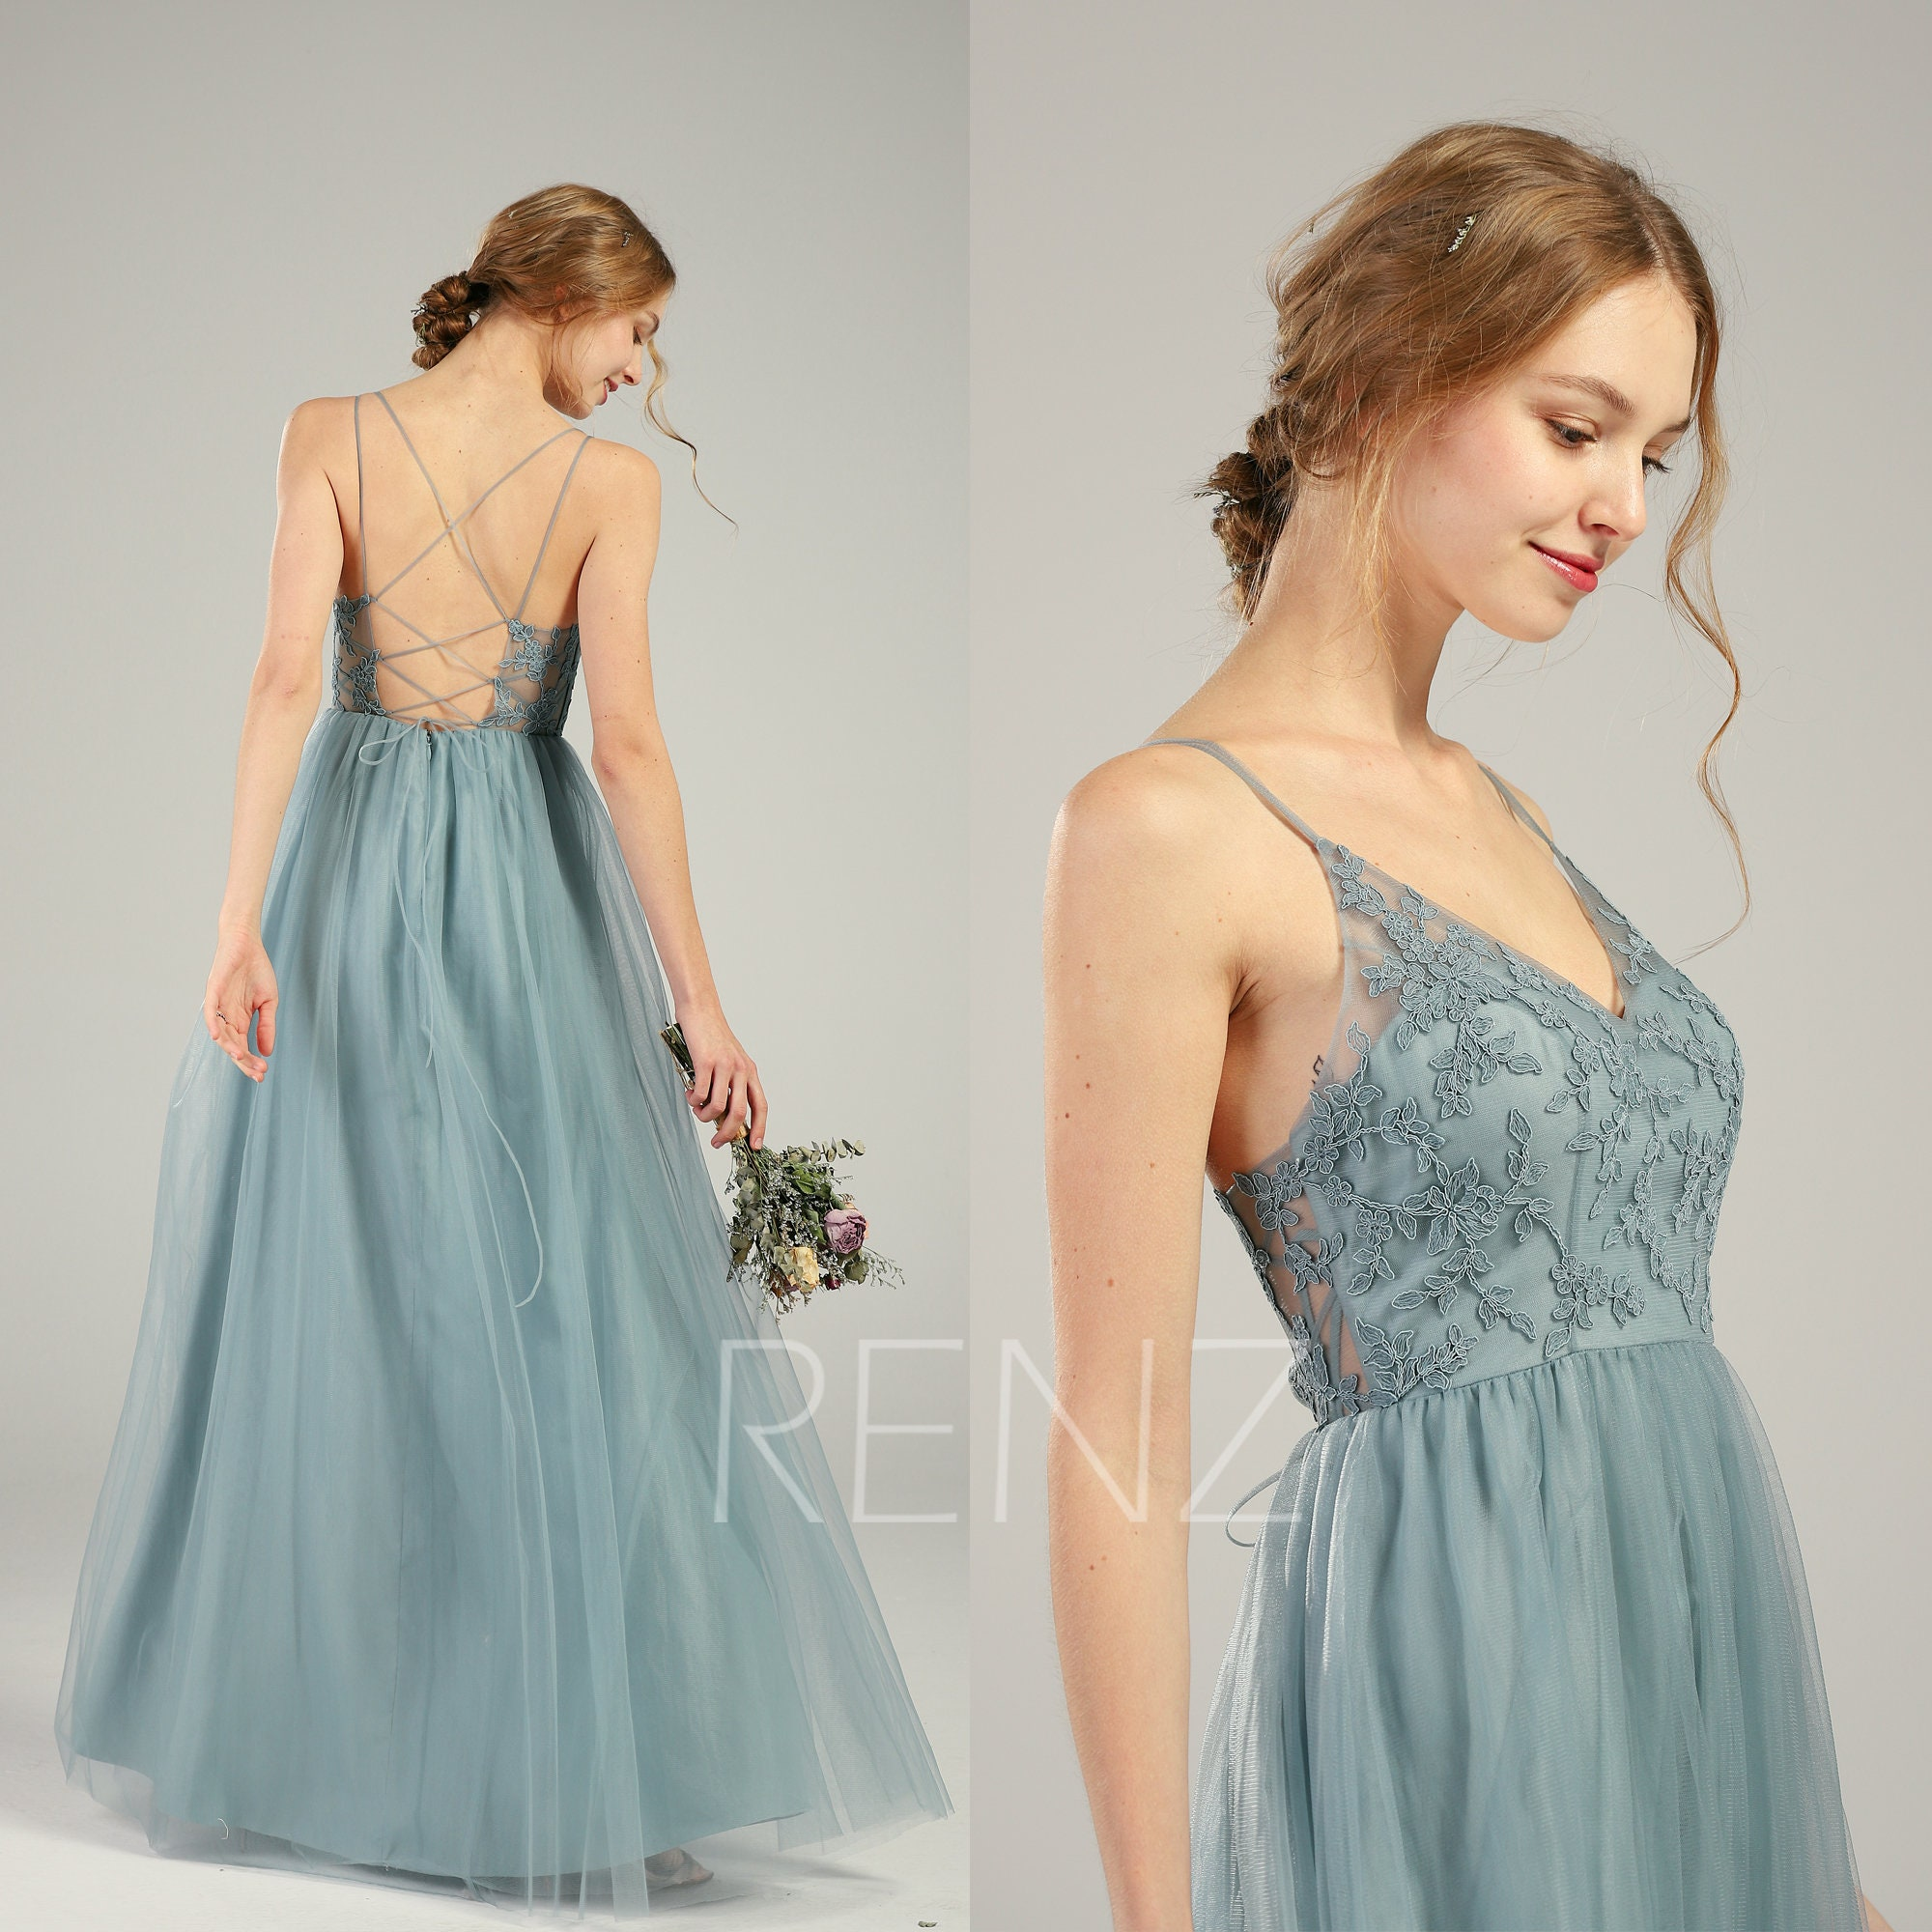 68df951980 Bridesmaid Dress Dusty Blue Lace Wedding Dress Long V Neck Spaghetti Strap  Prom Dress Illusion Lace-up Back A-line Tulle Dress (HS736)